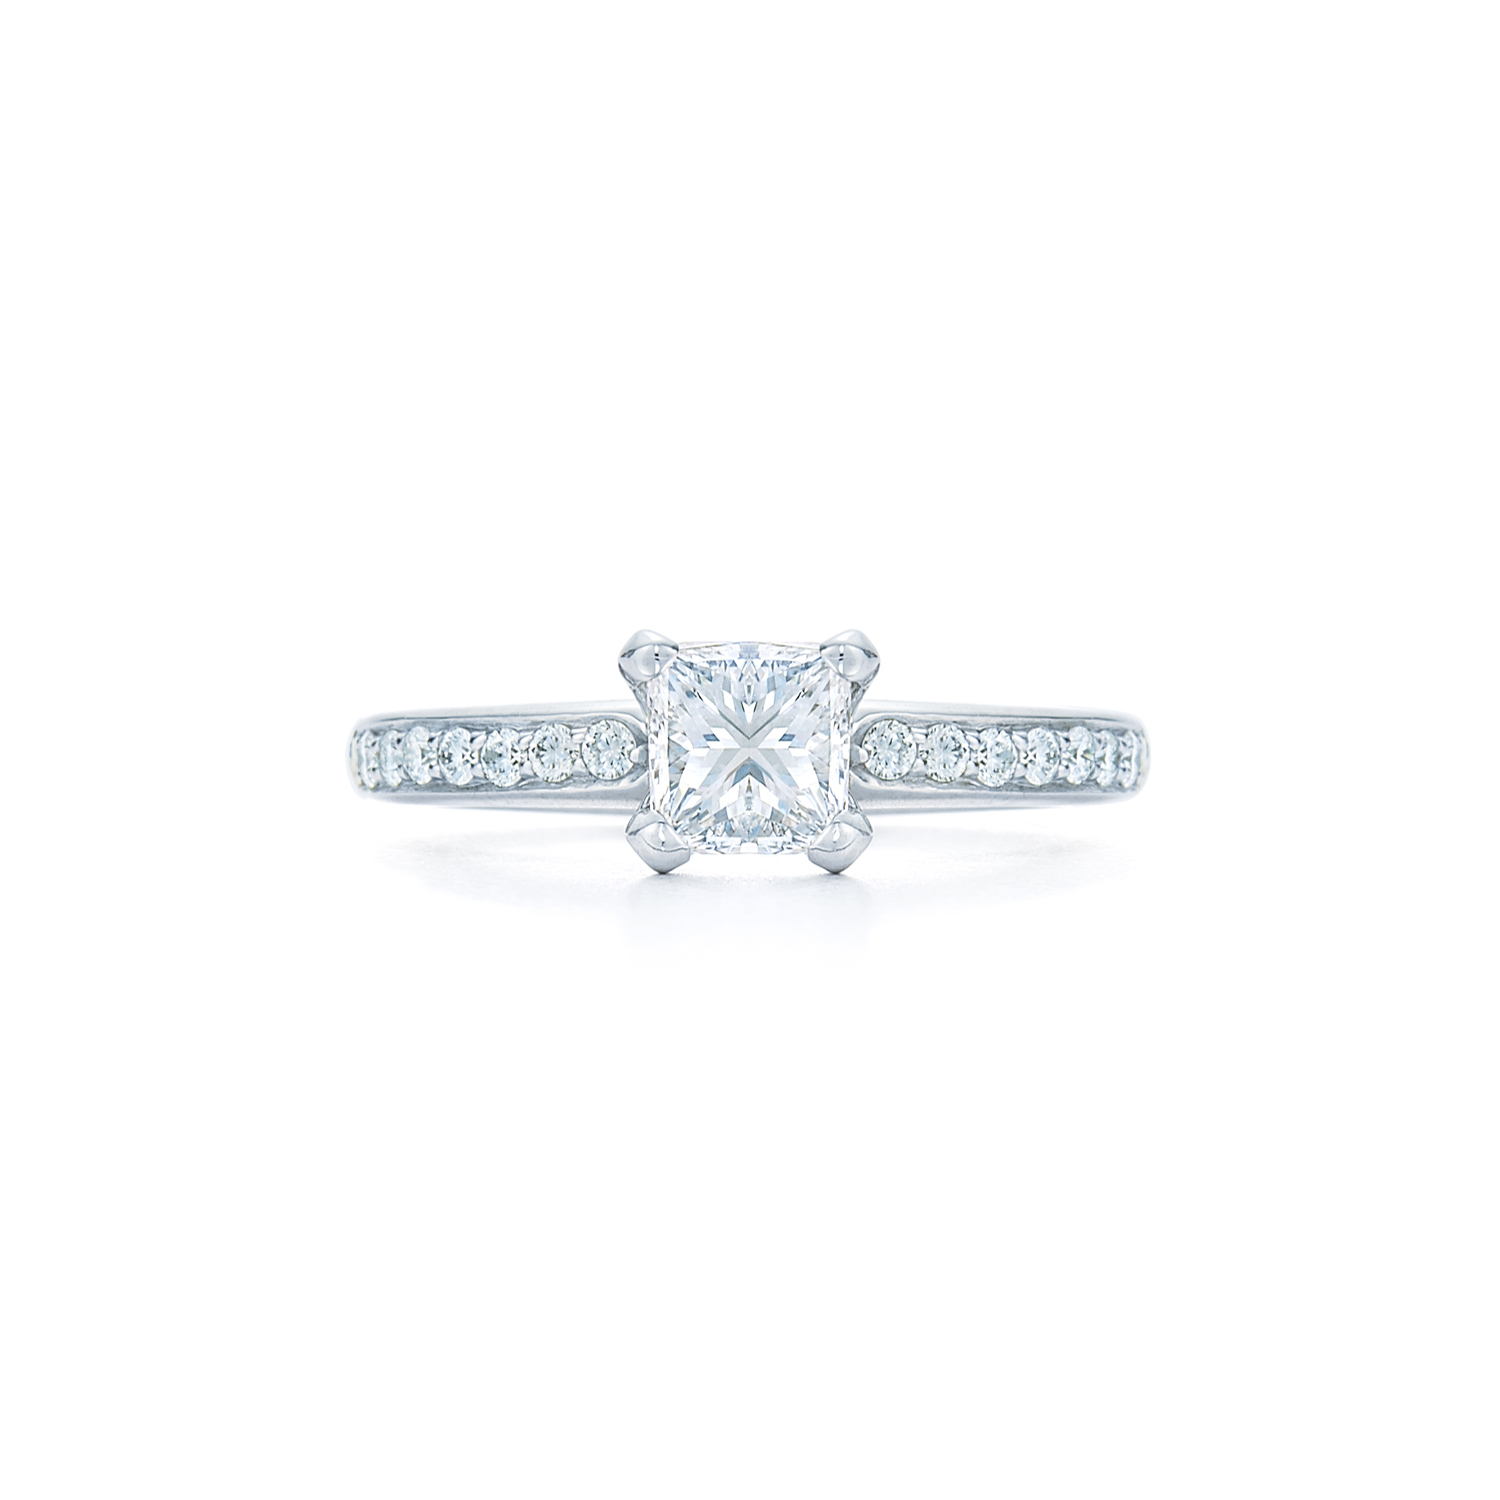 princess white l rsp gold jewellery ring main rings engagement pdp buymogul diamond at cut mogul online